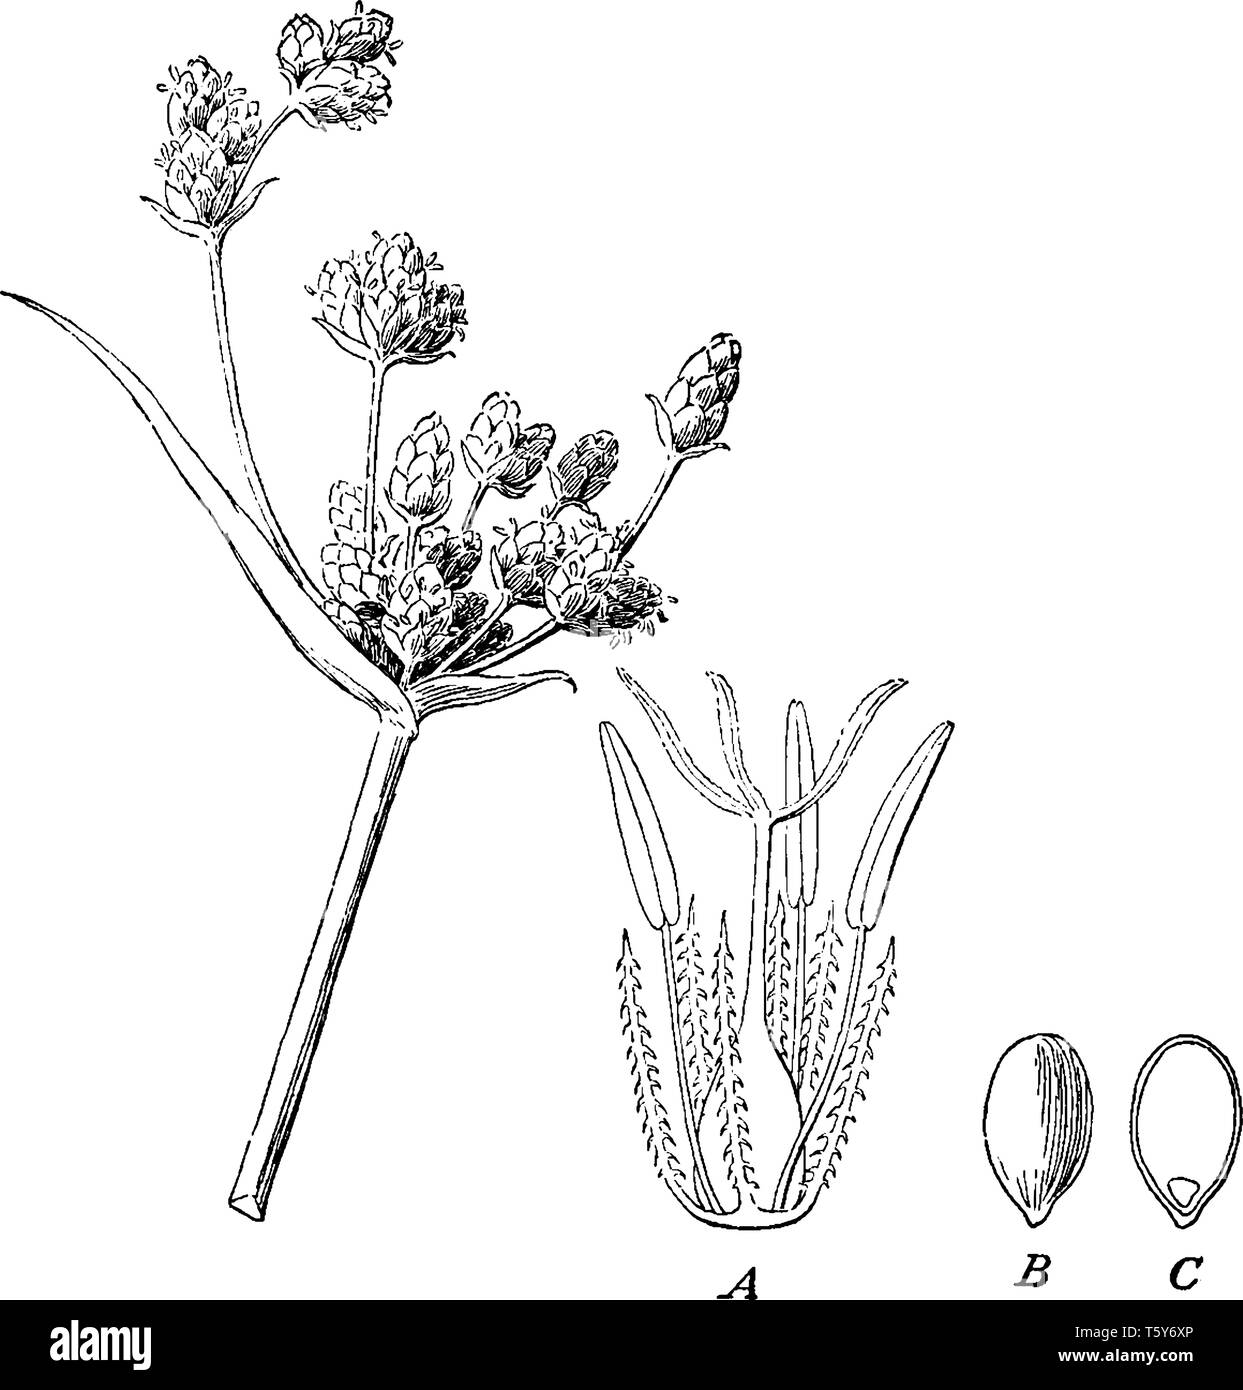 While sedges may be found growing in almost all environments, many are associated with wetlands, or with poor soils its stalk is thick and long, vinta - Stock Image